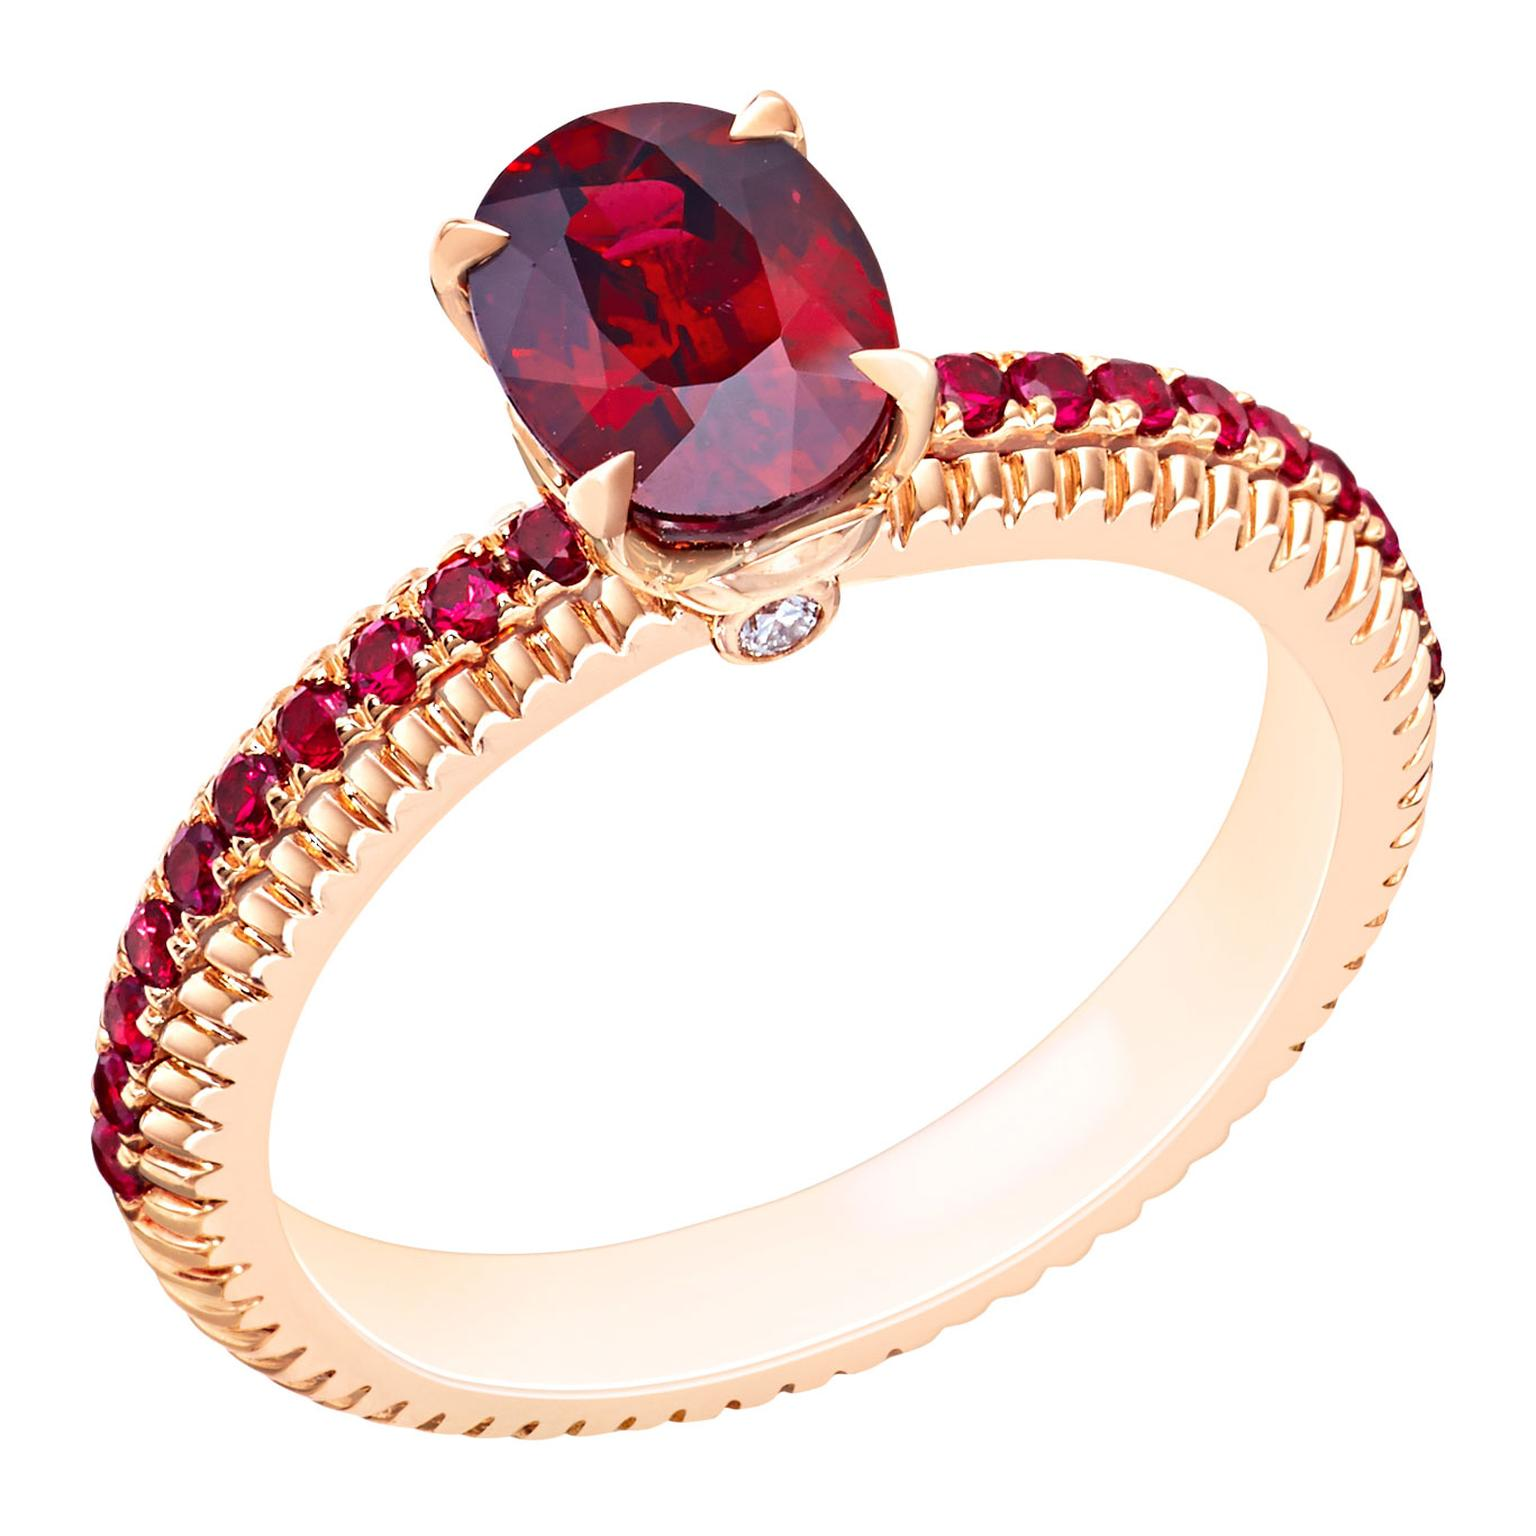 Fabergé ruby fluted engagement ring